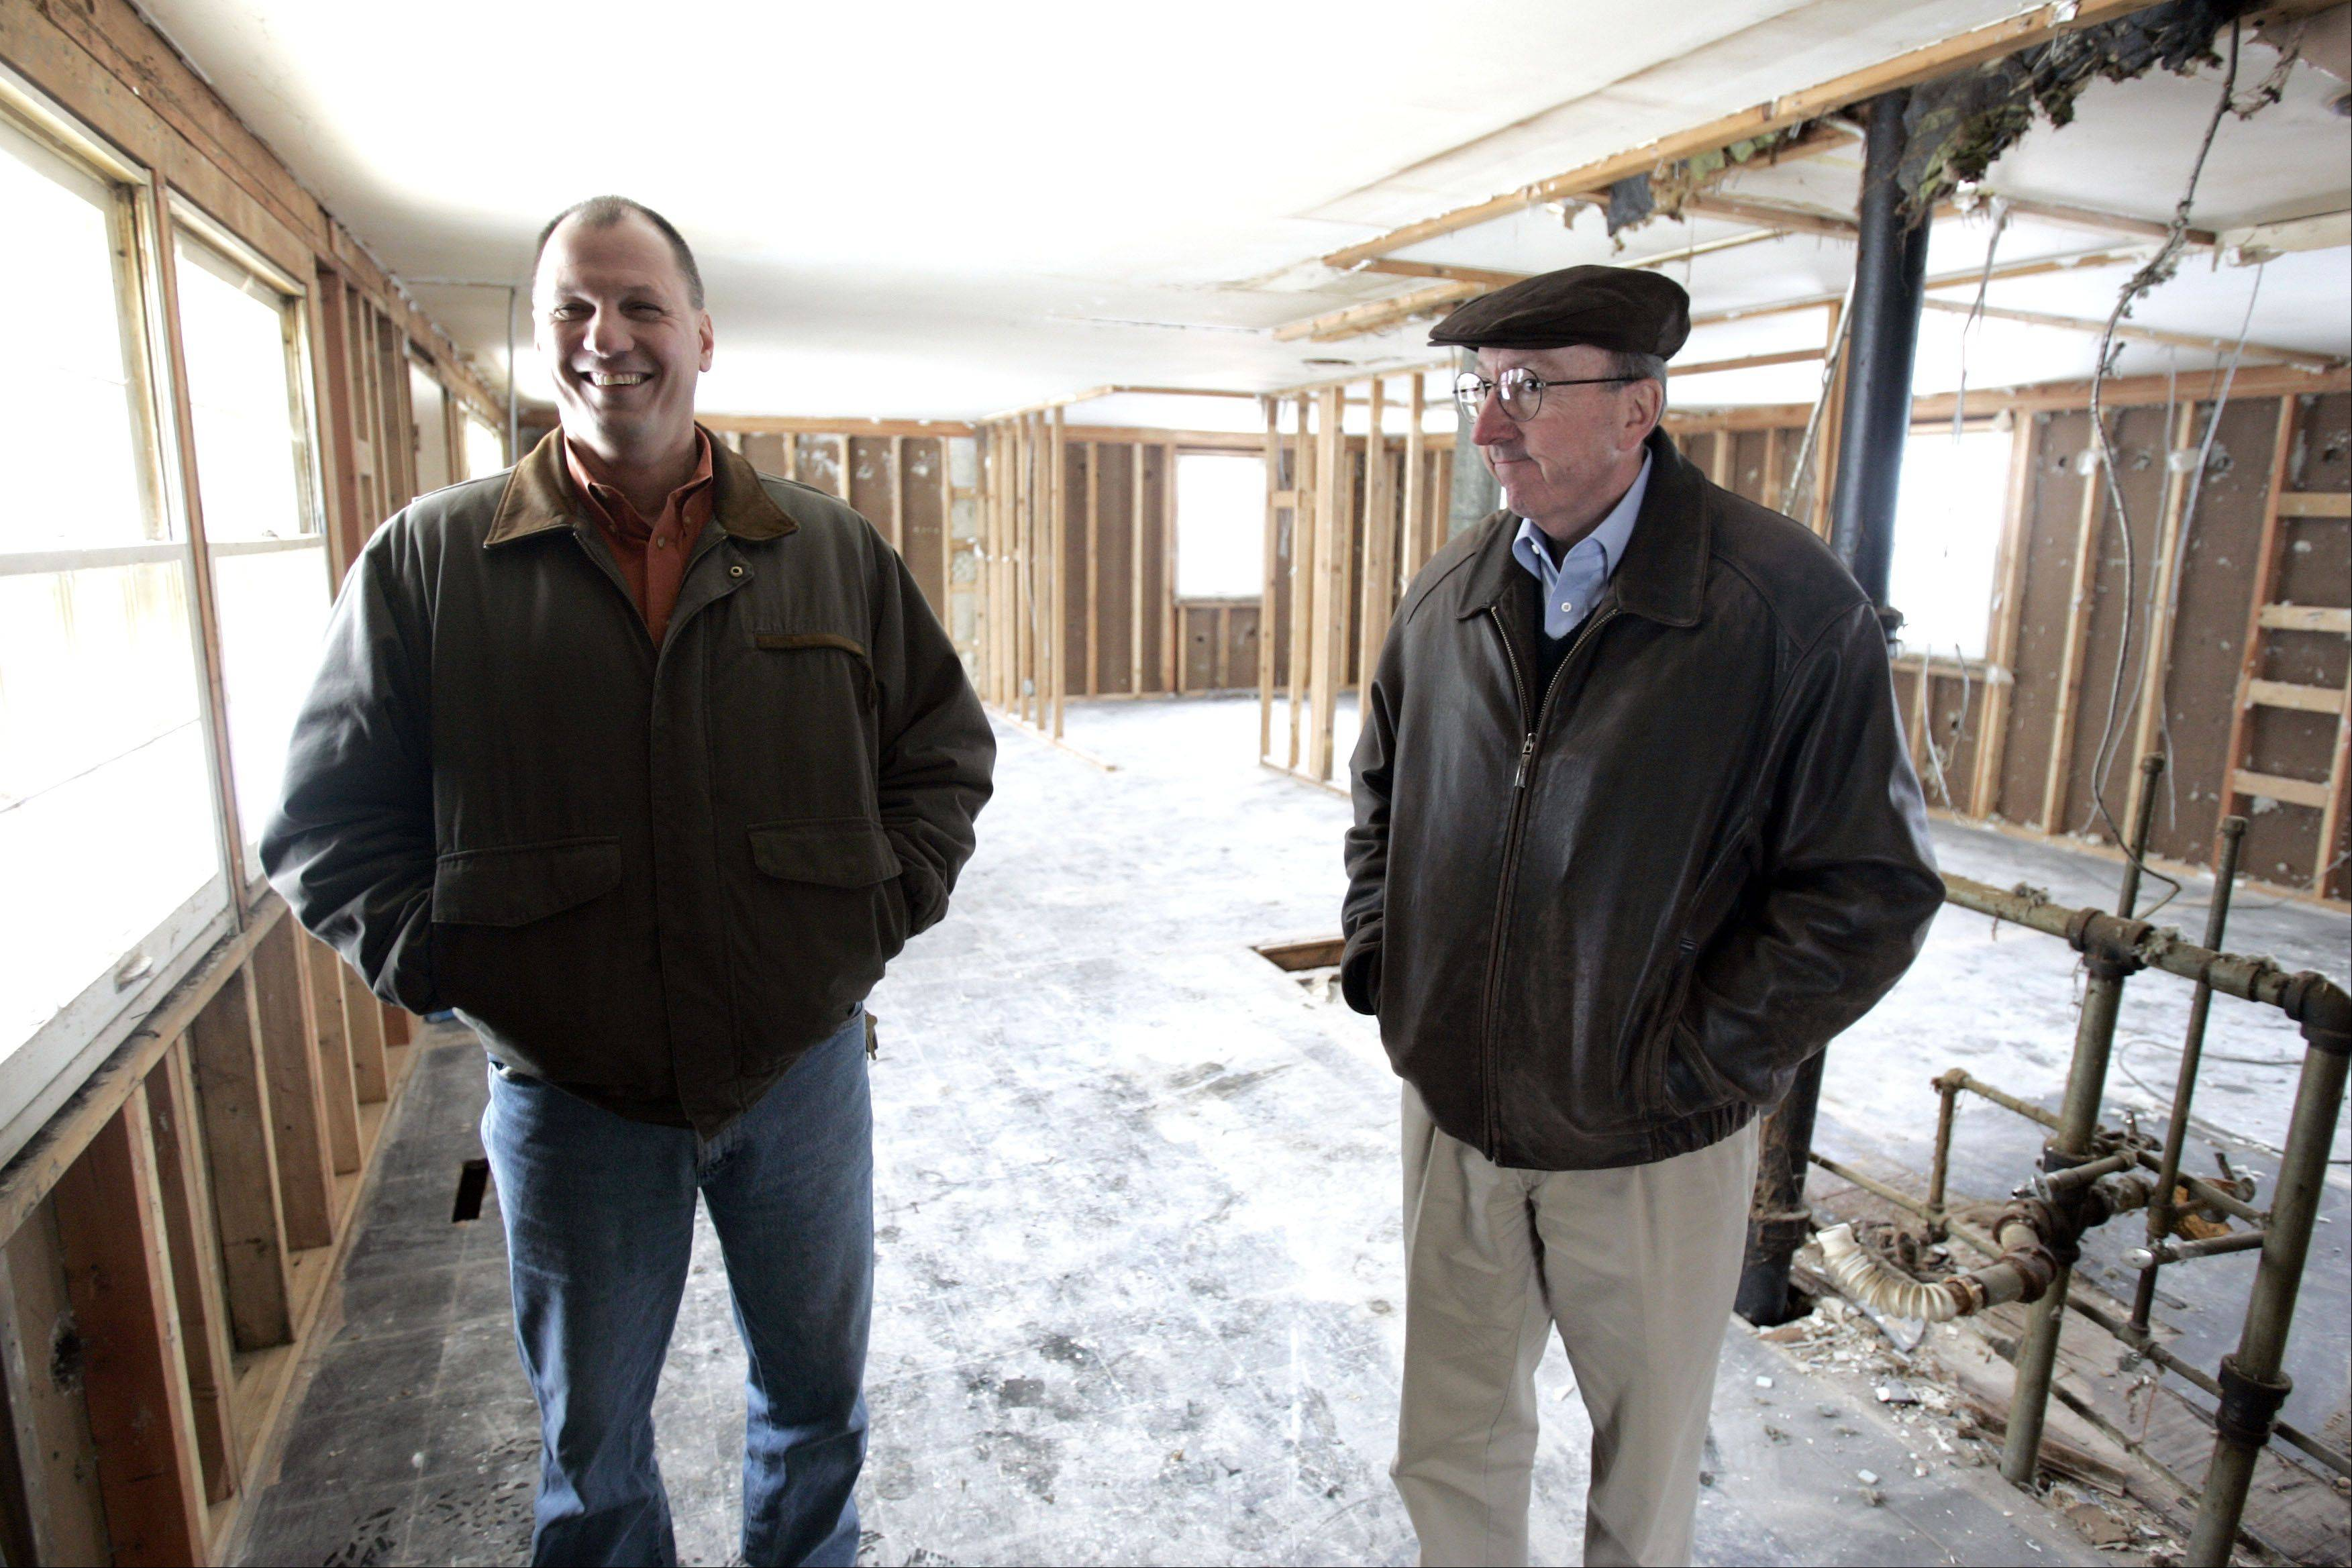 OTTO Engineering facilities manager Jerry Skowronski, left, and Tom Roeser, owner of Homes by OTTO, in one of the homes that the companies are working to rehab for resale in the Carpentersville area.